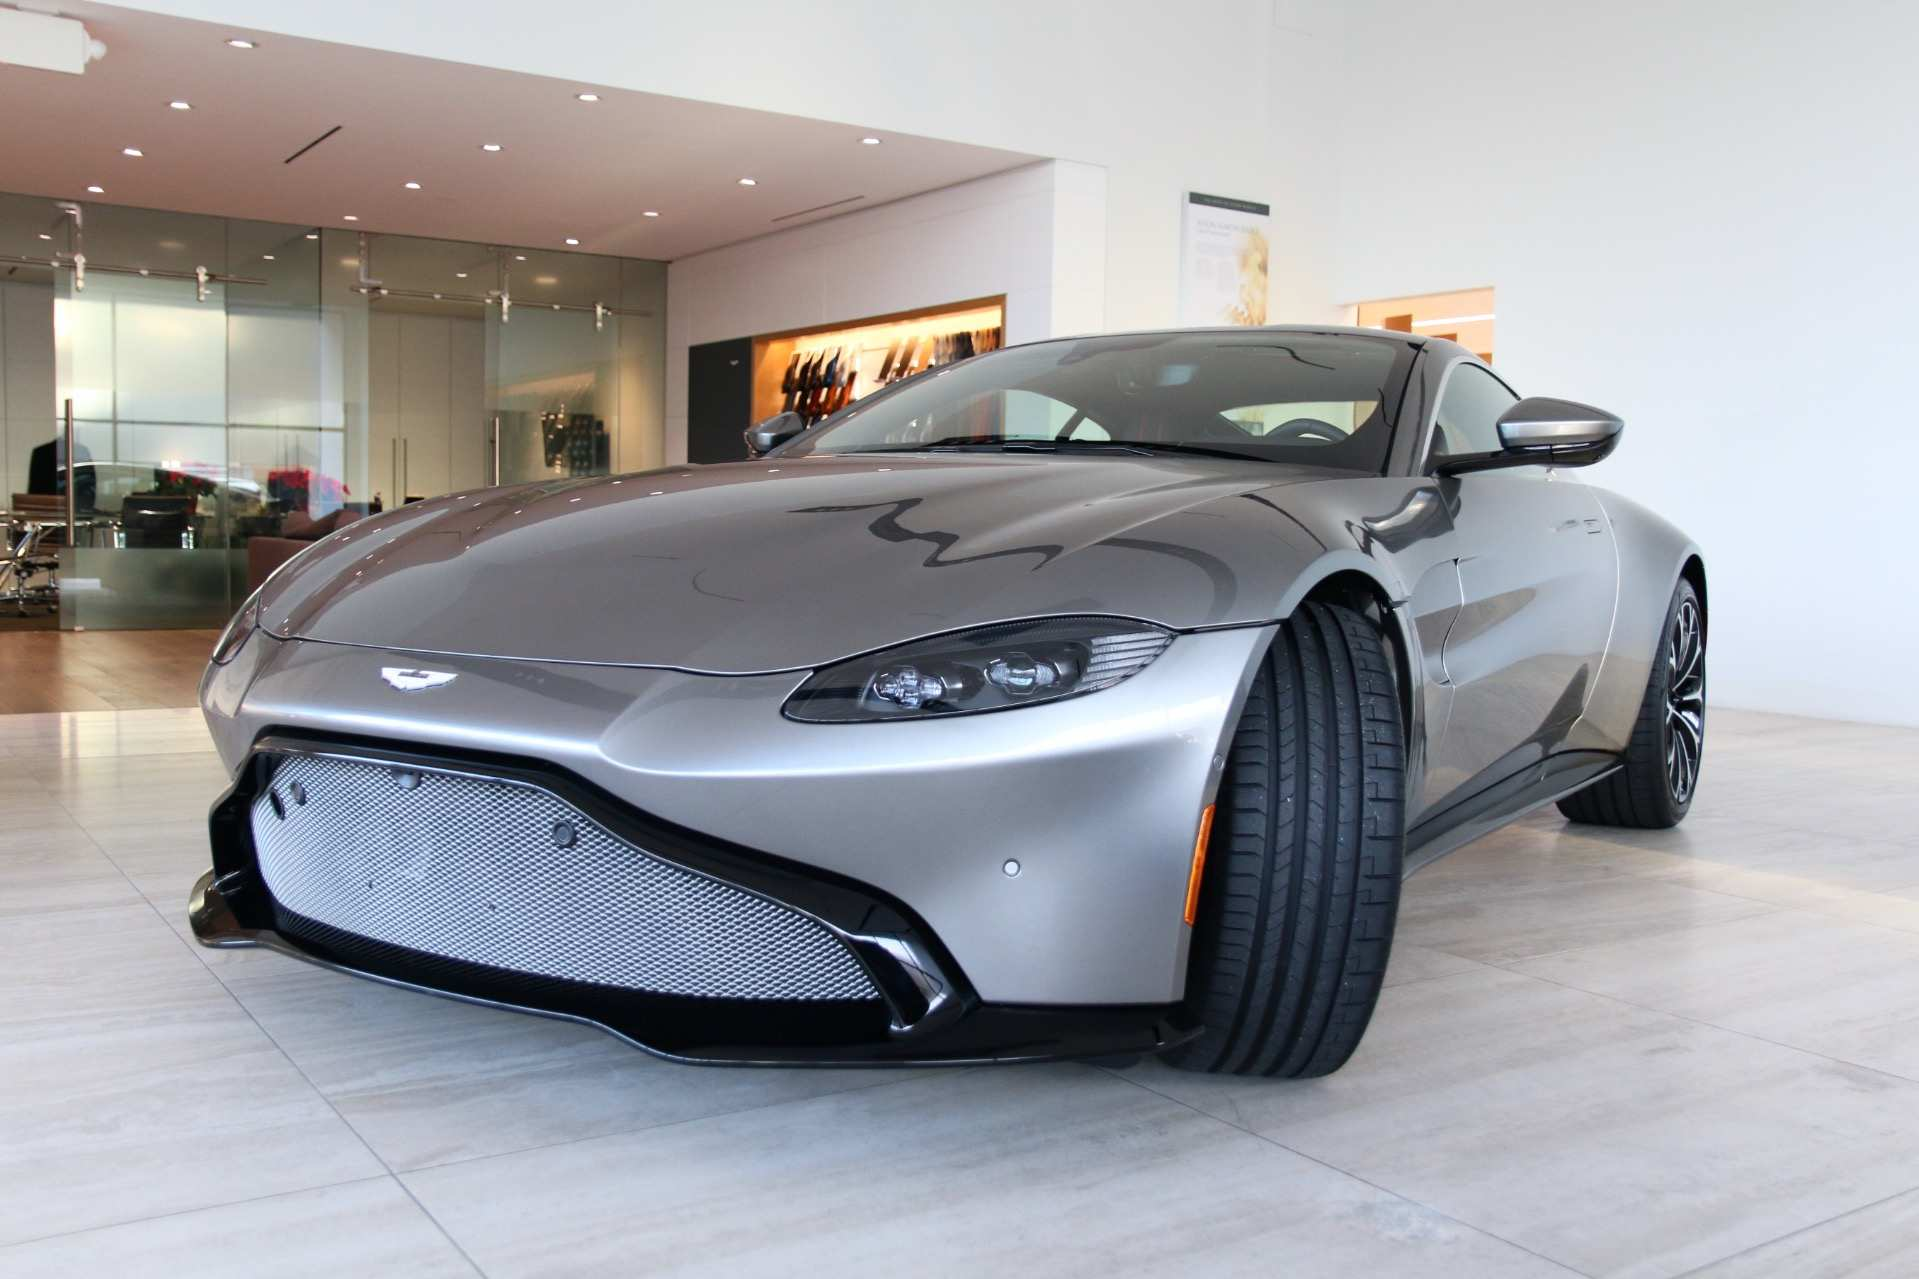 91 Great 2019 Aston Martin Vantage Msrp Ratings by 2019 Aston Martin Vantage Msrp